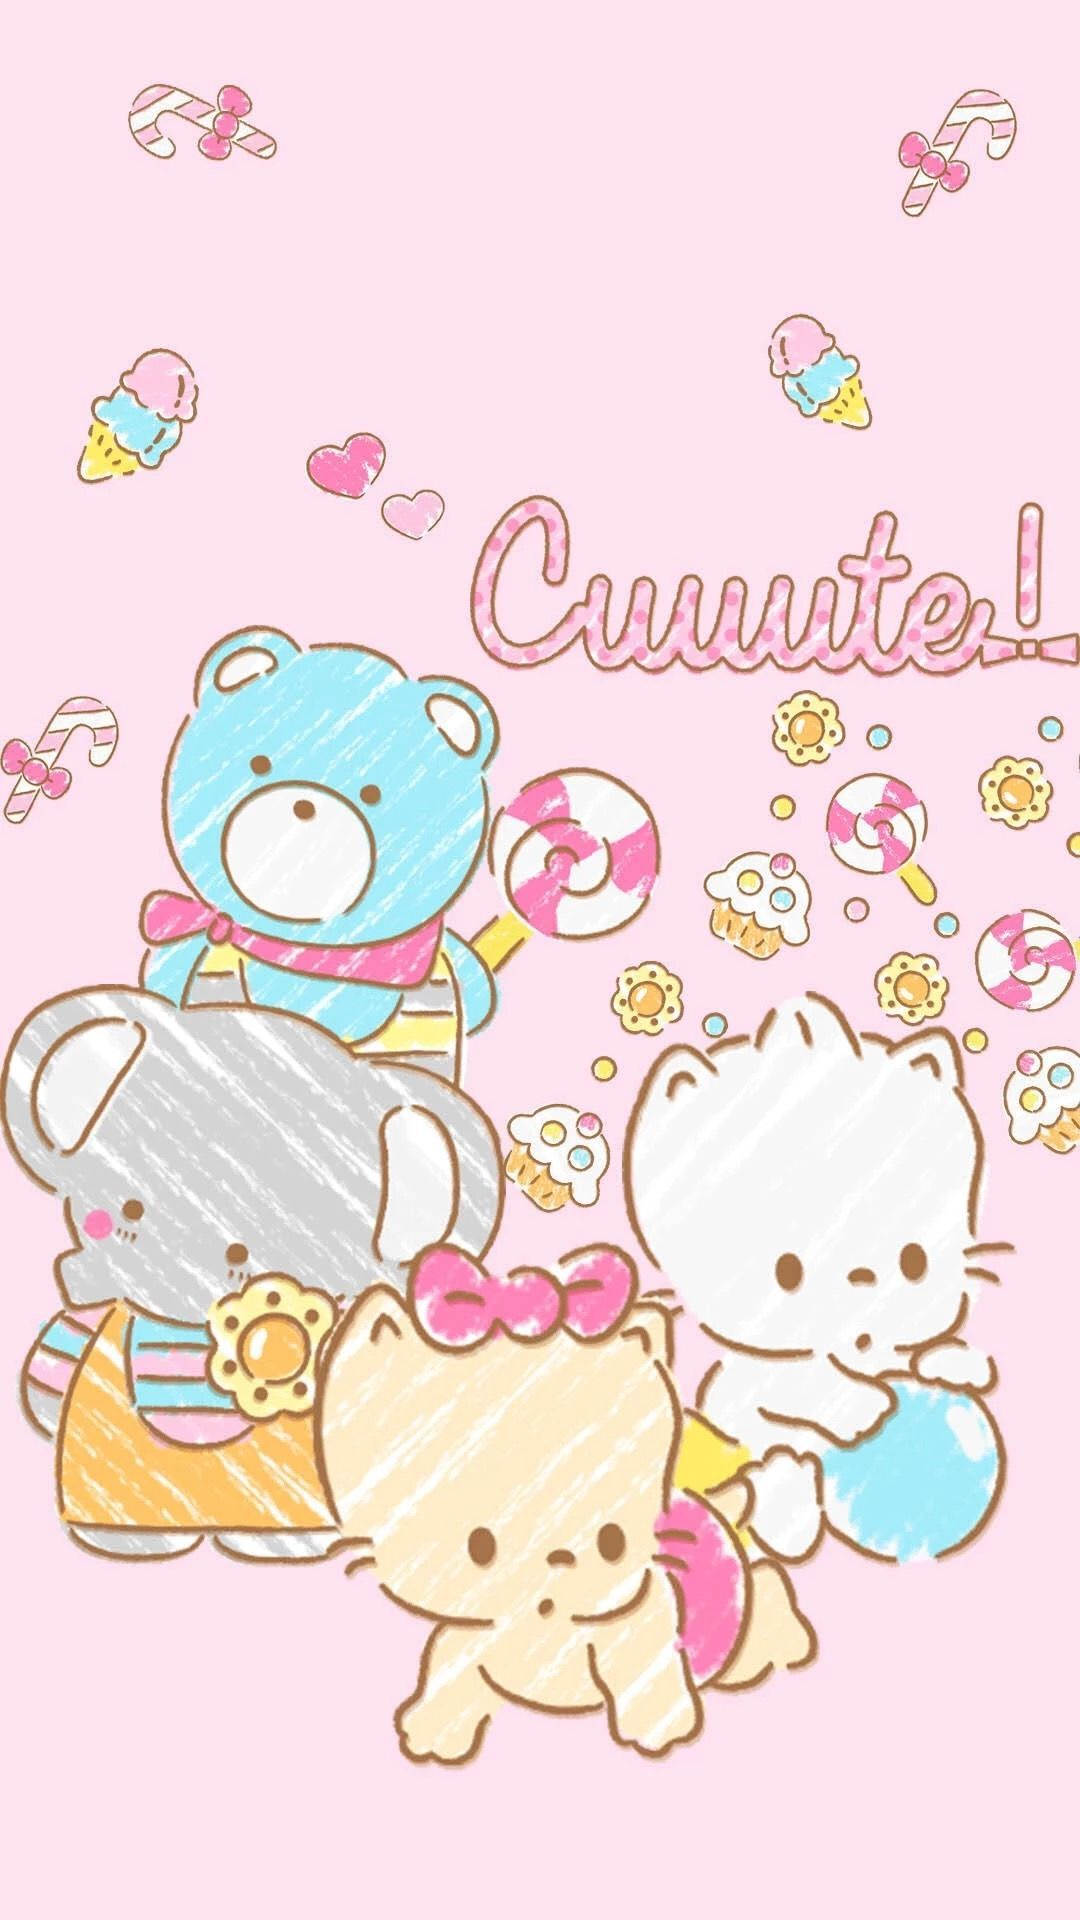 Cute Kawaii Iphone Wallpapers Hupages Download Iphone Wallpapers Hello Kitty Iphone Wallpaper Kawaii Wallpaper Hello Kitty Wallpaper Hd